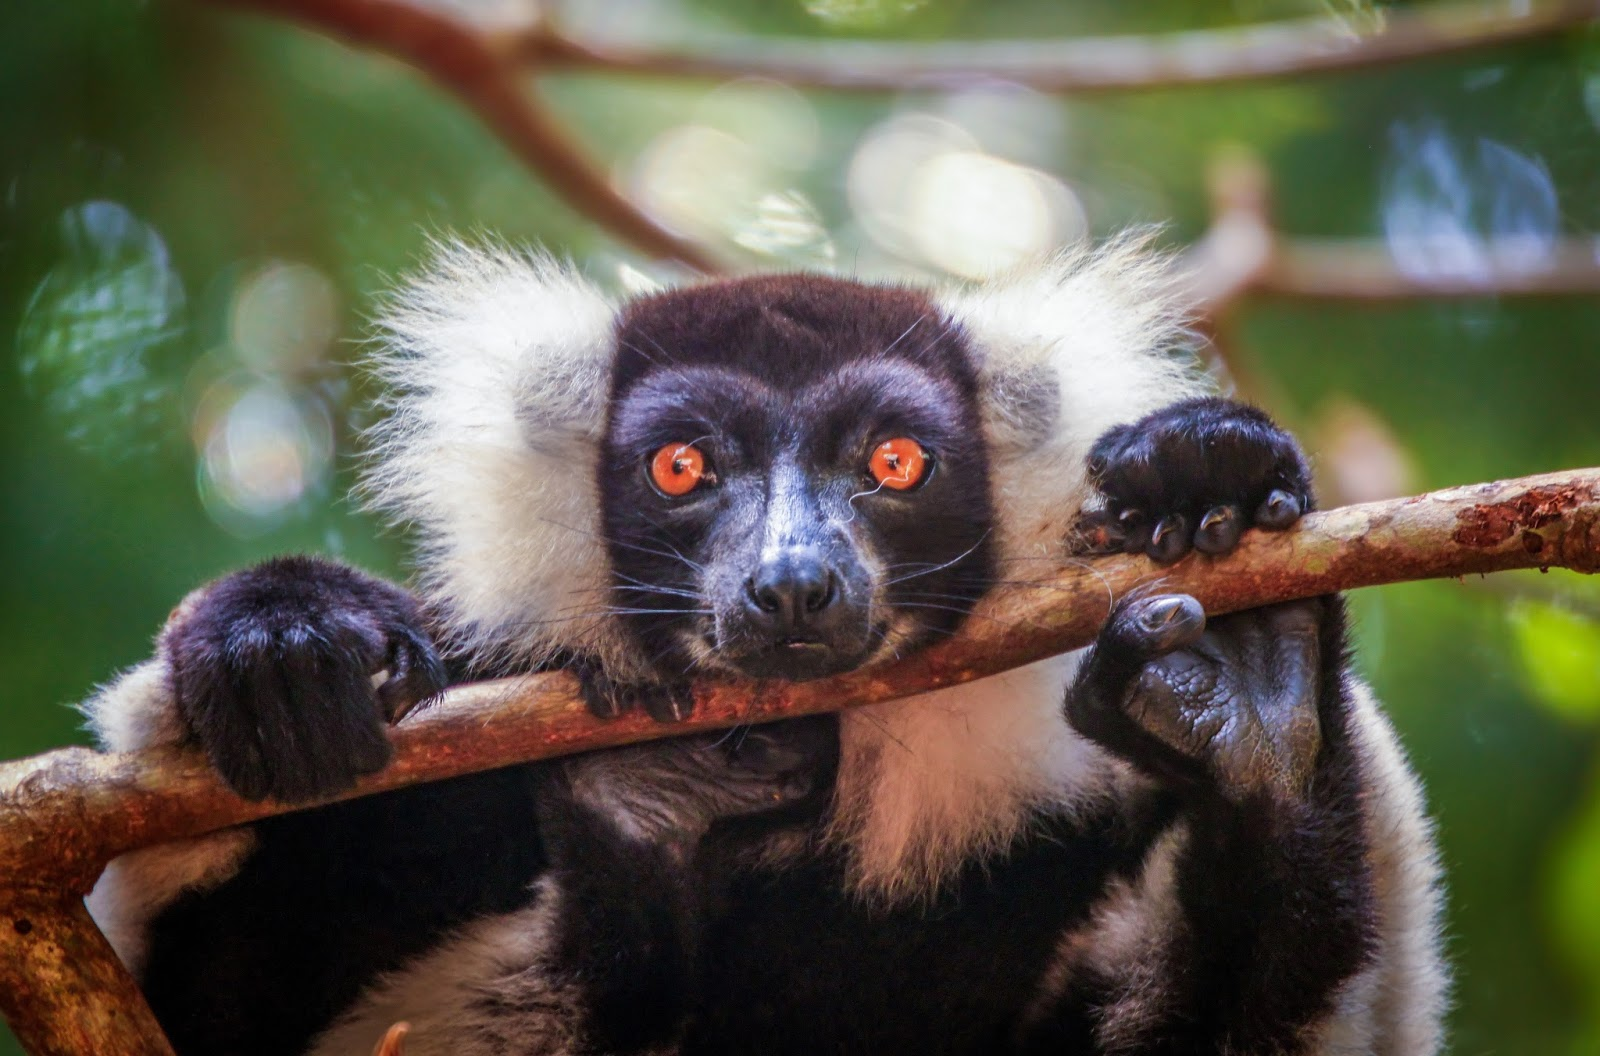 primates Pri ate (prī′mĭt, -māt′) n 1 (prī′māt′) any of various mammals of the order primates, which consists of the lemurs, lorises, tarsiers, new world monkeys, old world monkeys, and apes including humans, and is characterized by nails on the hands and feet, a short snout, and a large brain 2 a bishop of highest rank in a province or country [from new latin prīmātēs, order name, from latin prīmātēs, pl of prīmās, principal, of first rank, from prīmus, first see per.